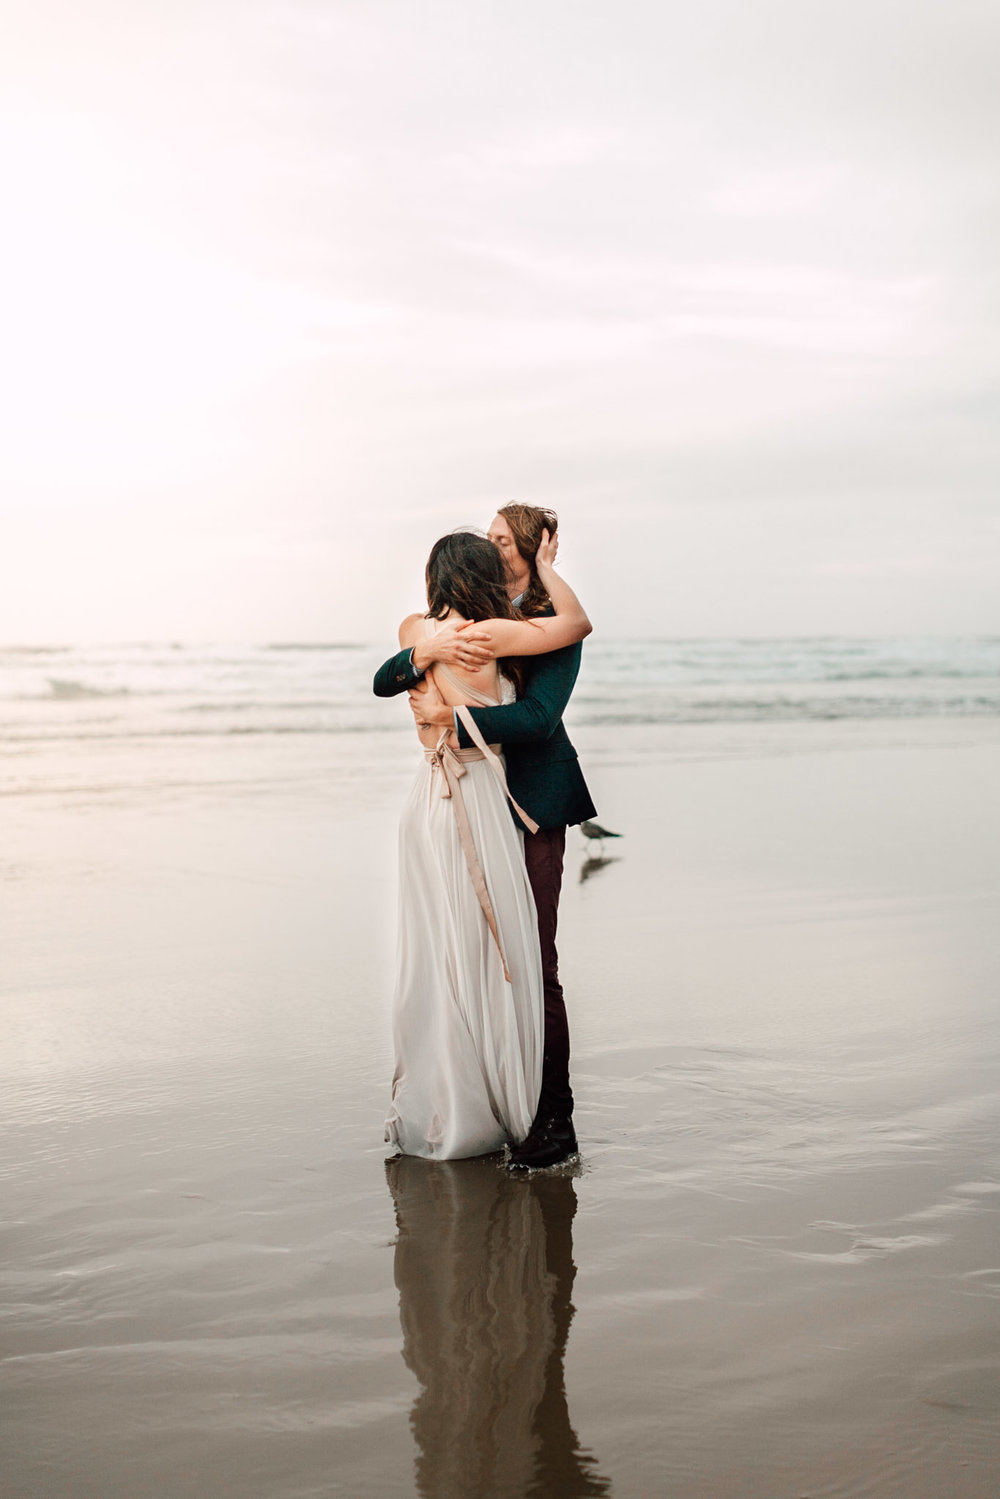 Oregon-Coast-Manzanita-Beach-Engagement-Pia-Anna-Christian-Wedding-Photography-PNW-GB-29.jpg